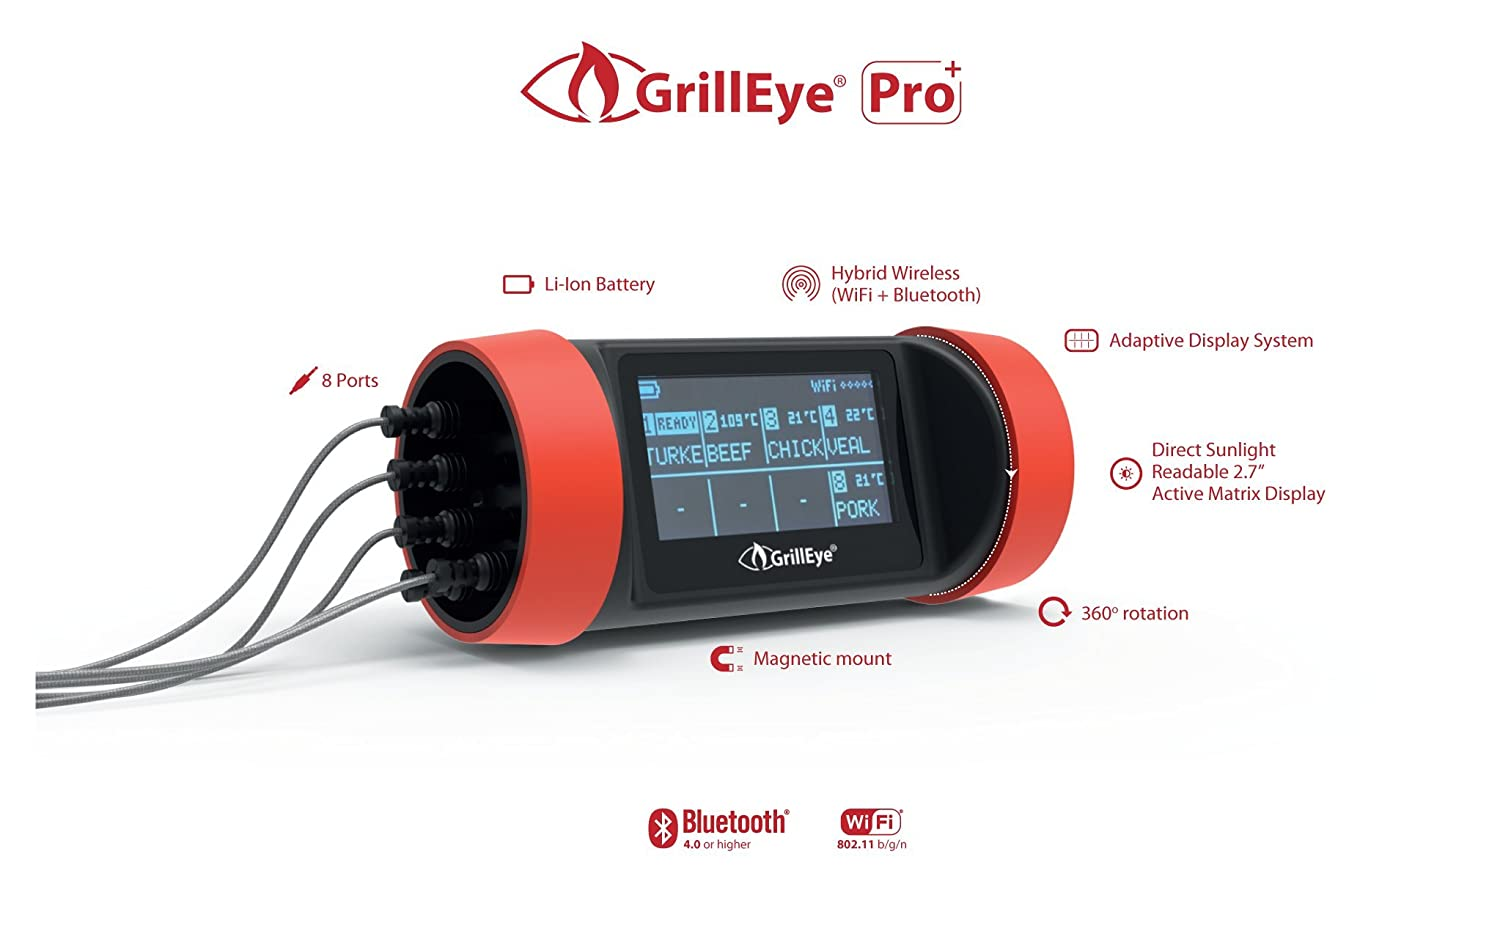 GrillEye Pro Plus Grilling & Smoking Thermometer with Hybrid-Wireless Technology G&C GE0003